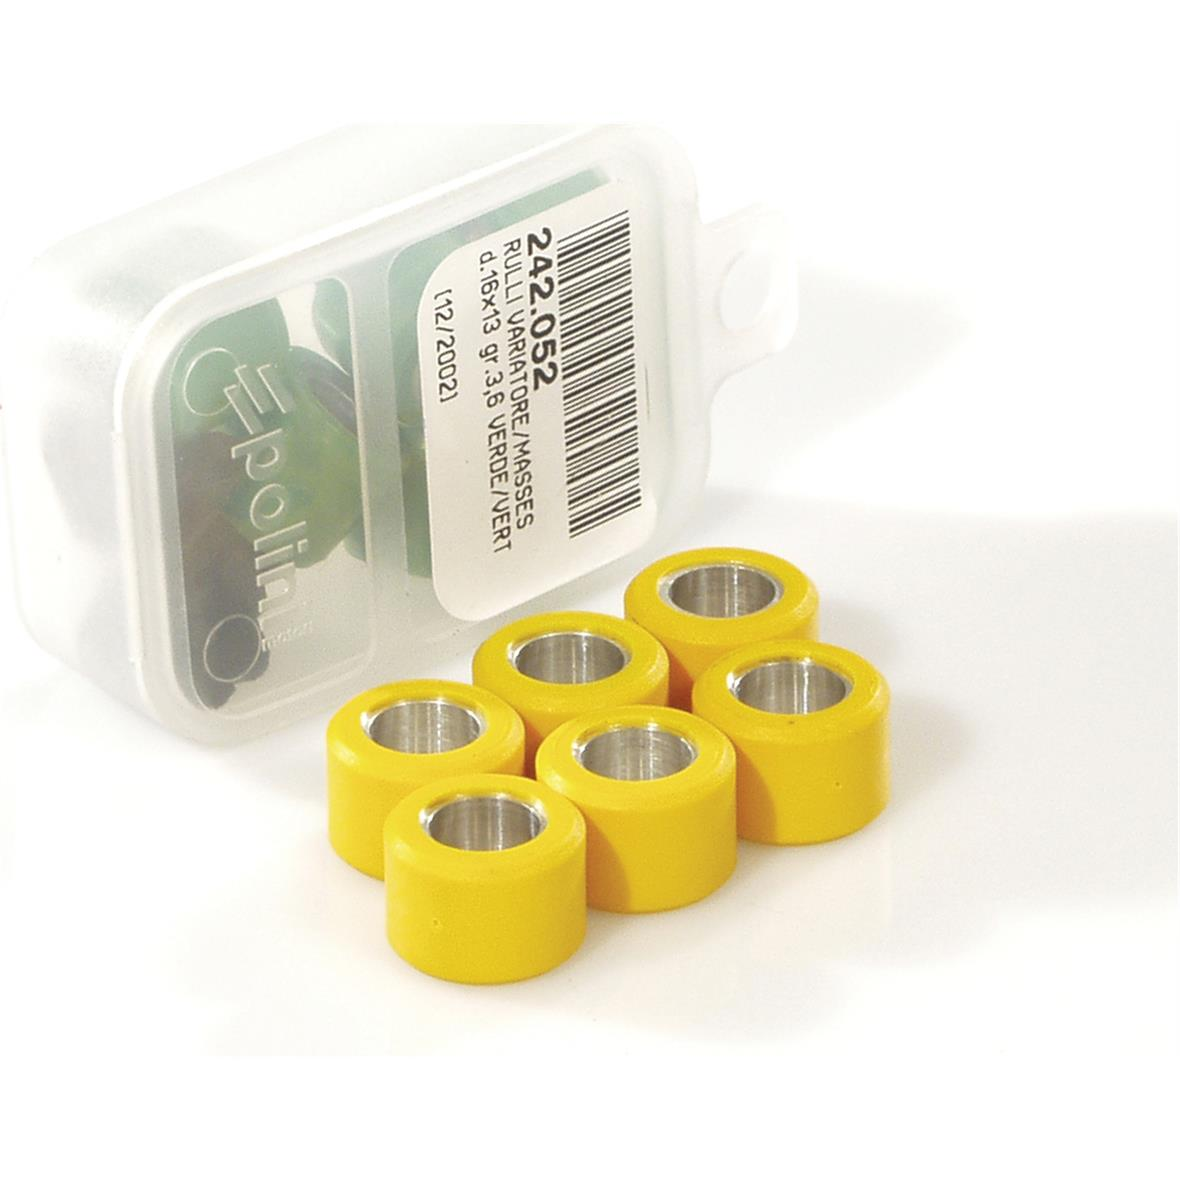 Product Image for 'Variator Rollers POLINI 15x12 mm 5,5gTitle'